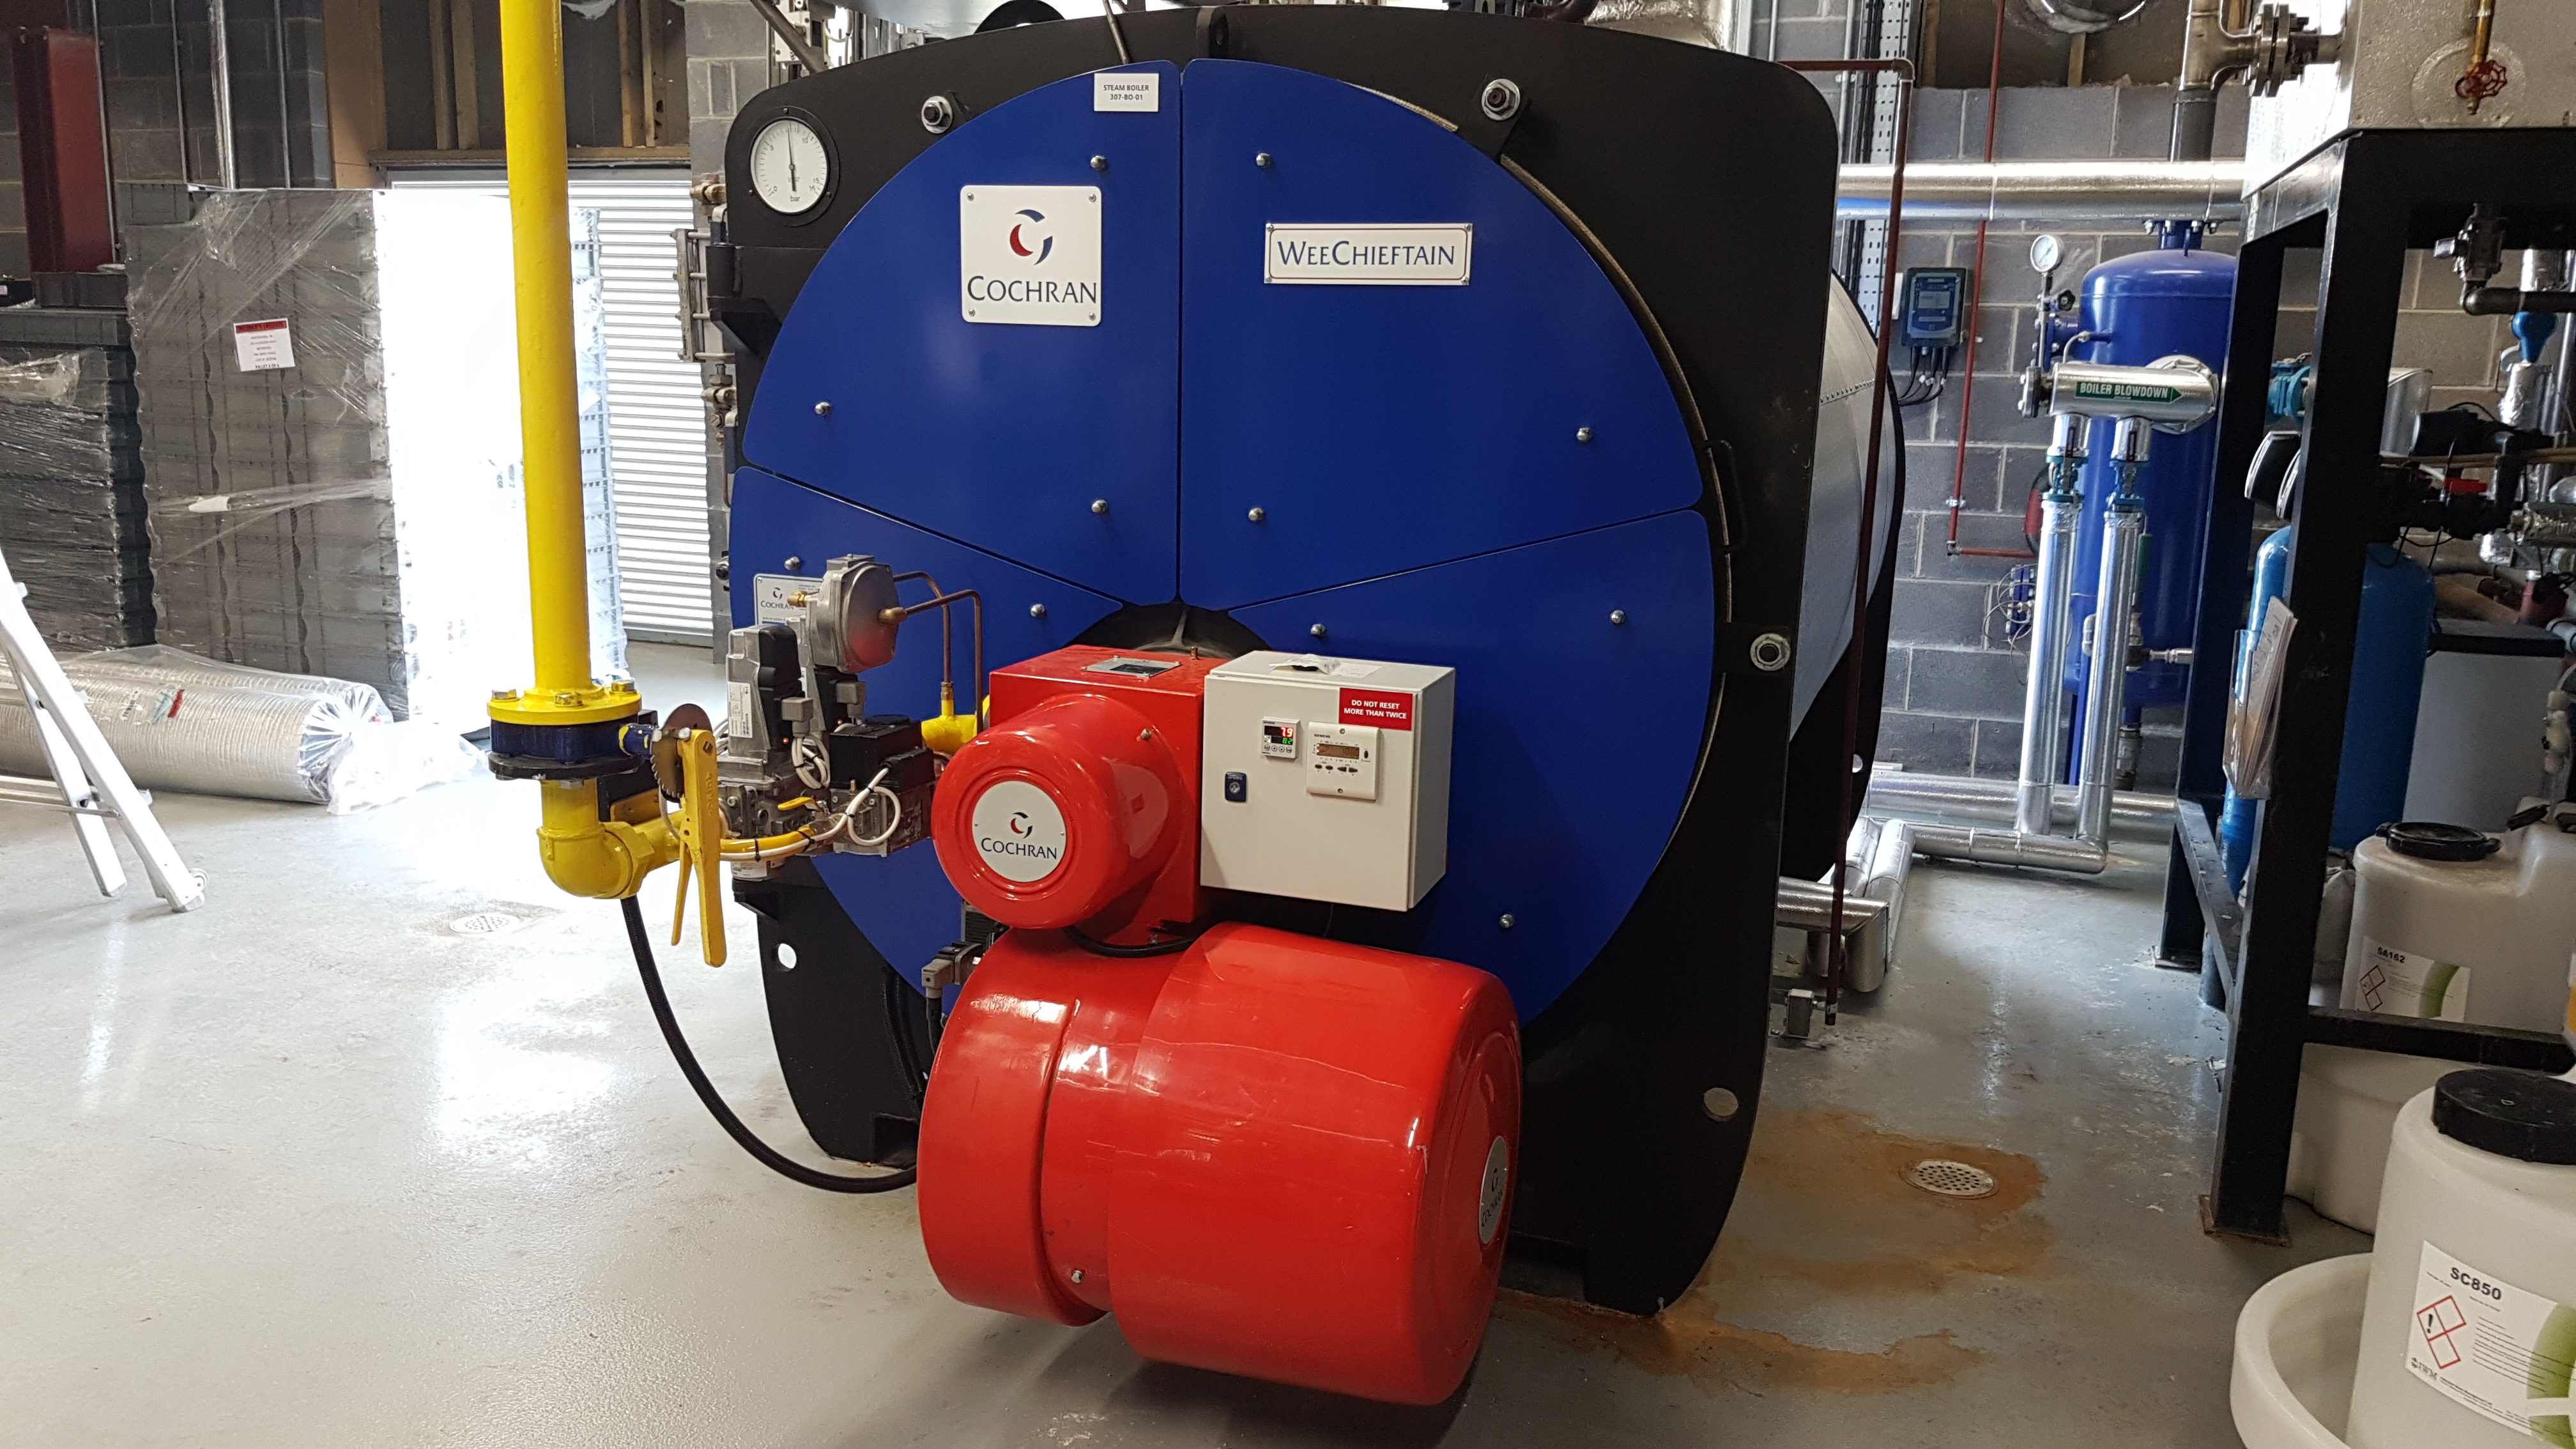 A new Cochran Steam boiler 1,500 KG/HR 10 Barg gas fired installed at Eirgen Pharma Waterford.